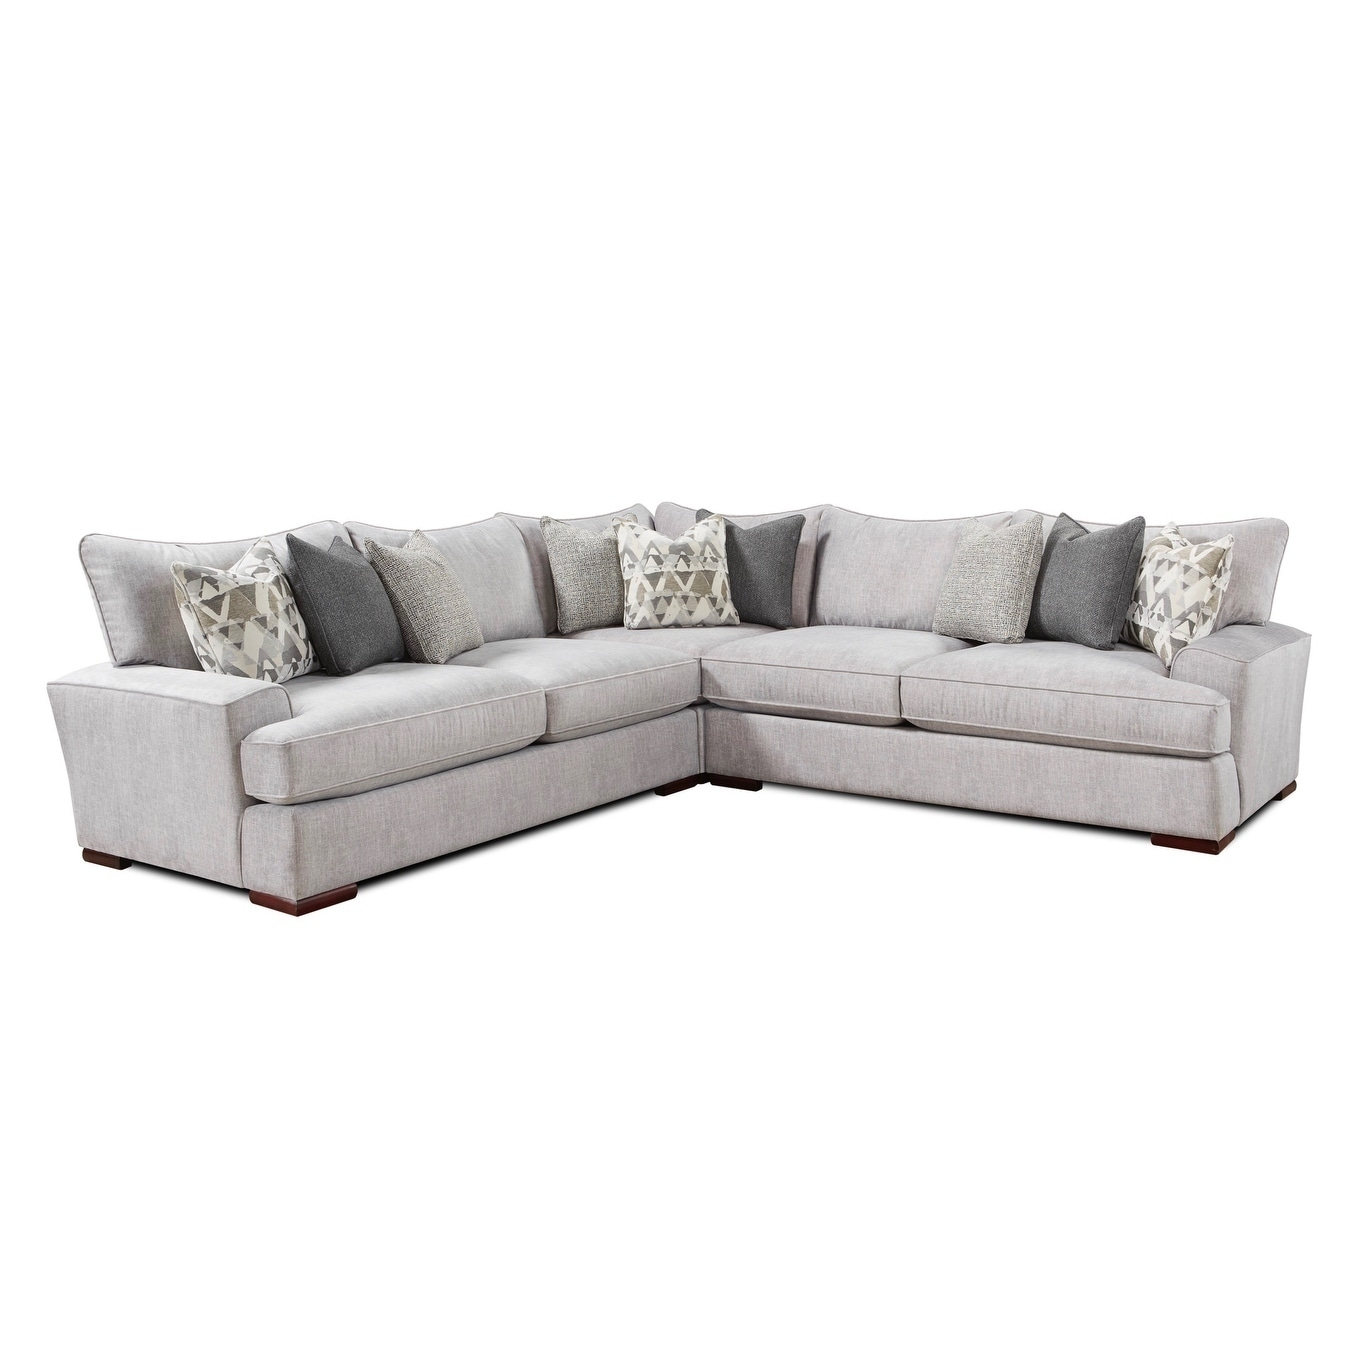 Alton Silver Sectional Sofa Gray Sectional Sofa Sectional Furniture